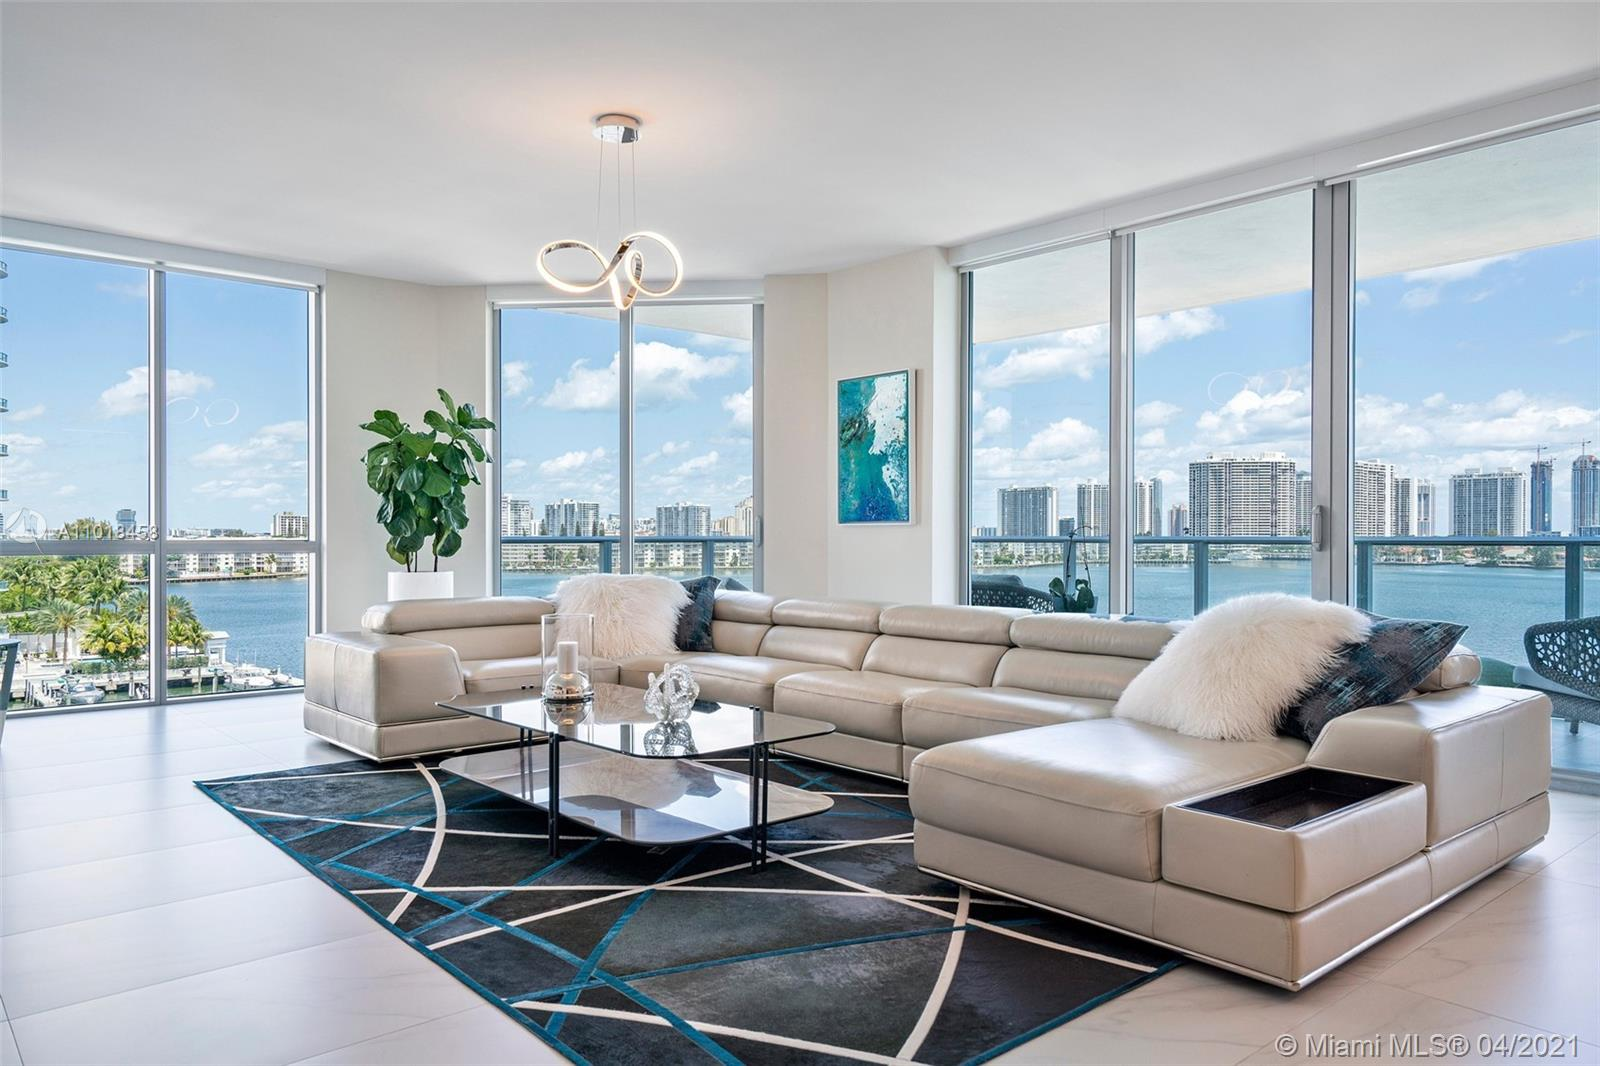 Marina Palms 1 #609 - 17111 Biscayne Blvd #609, North Miami Beach, FL 33160